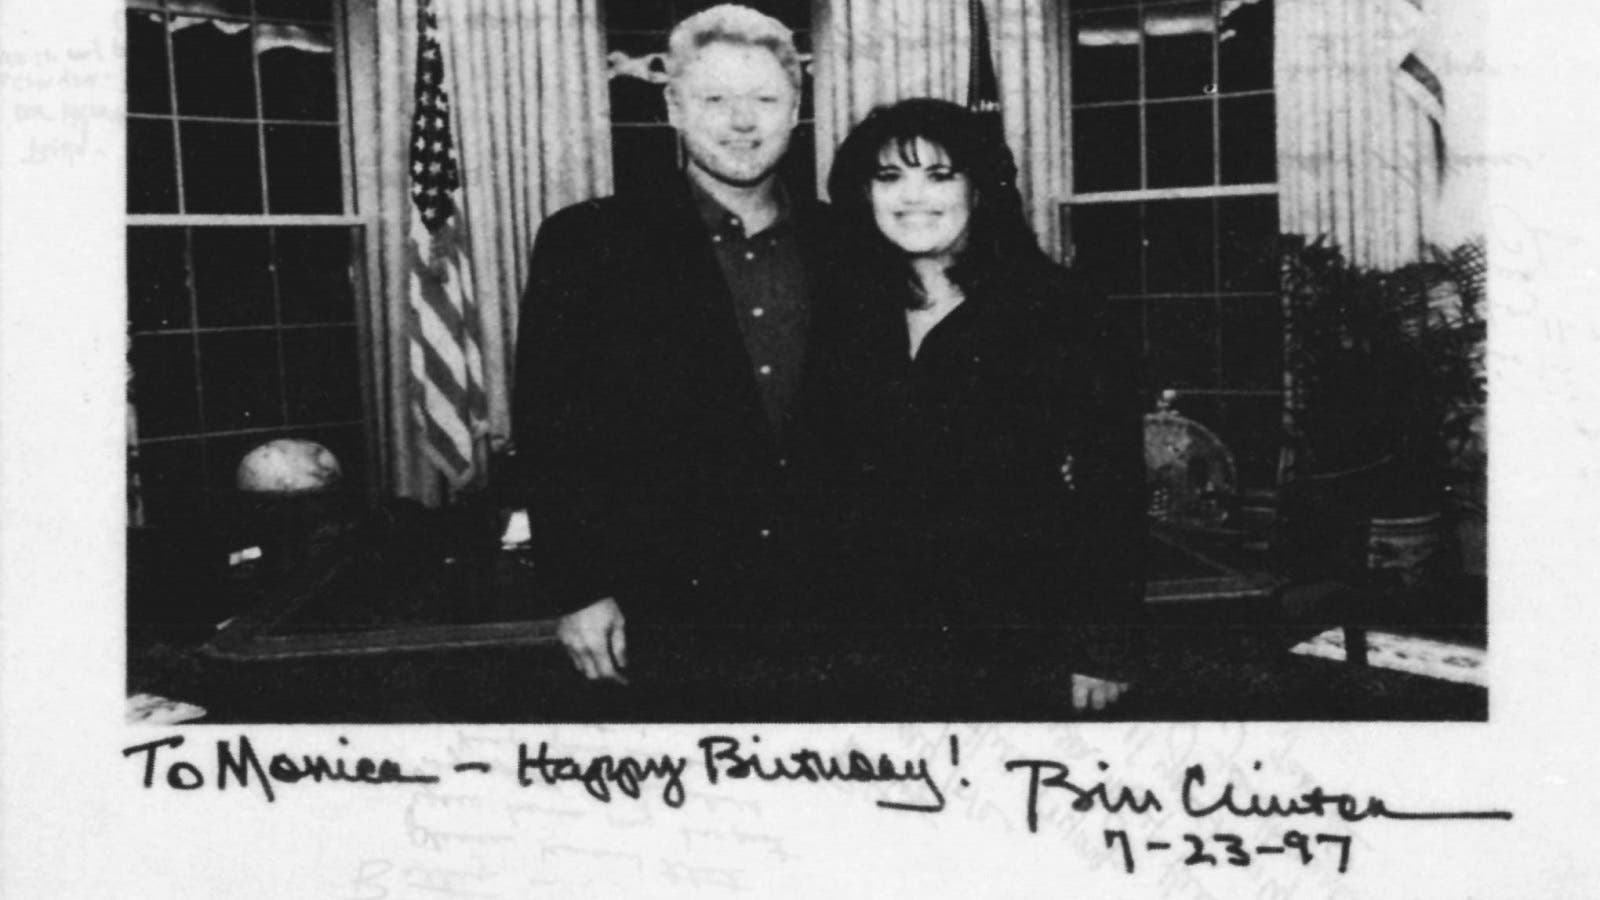 President Clinton is shown in a photo from evidence gathered by Independent Counsel Kenneth Starr in the White House sex scandal investigation in 1998. (Reuters)